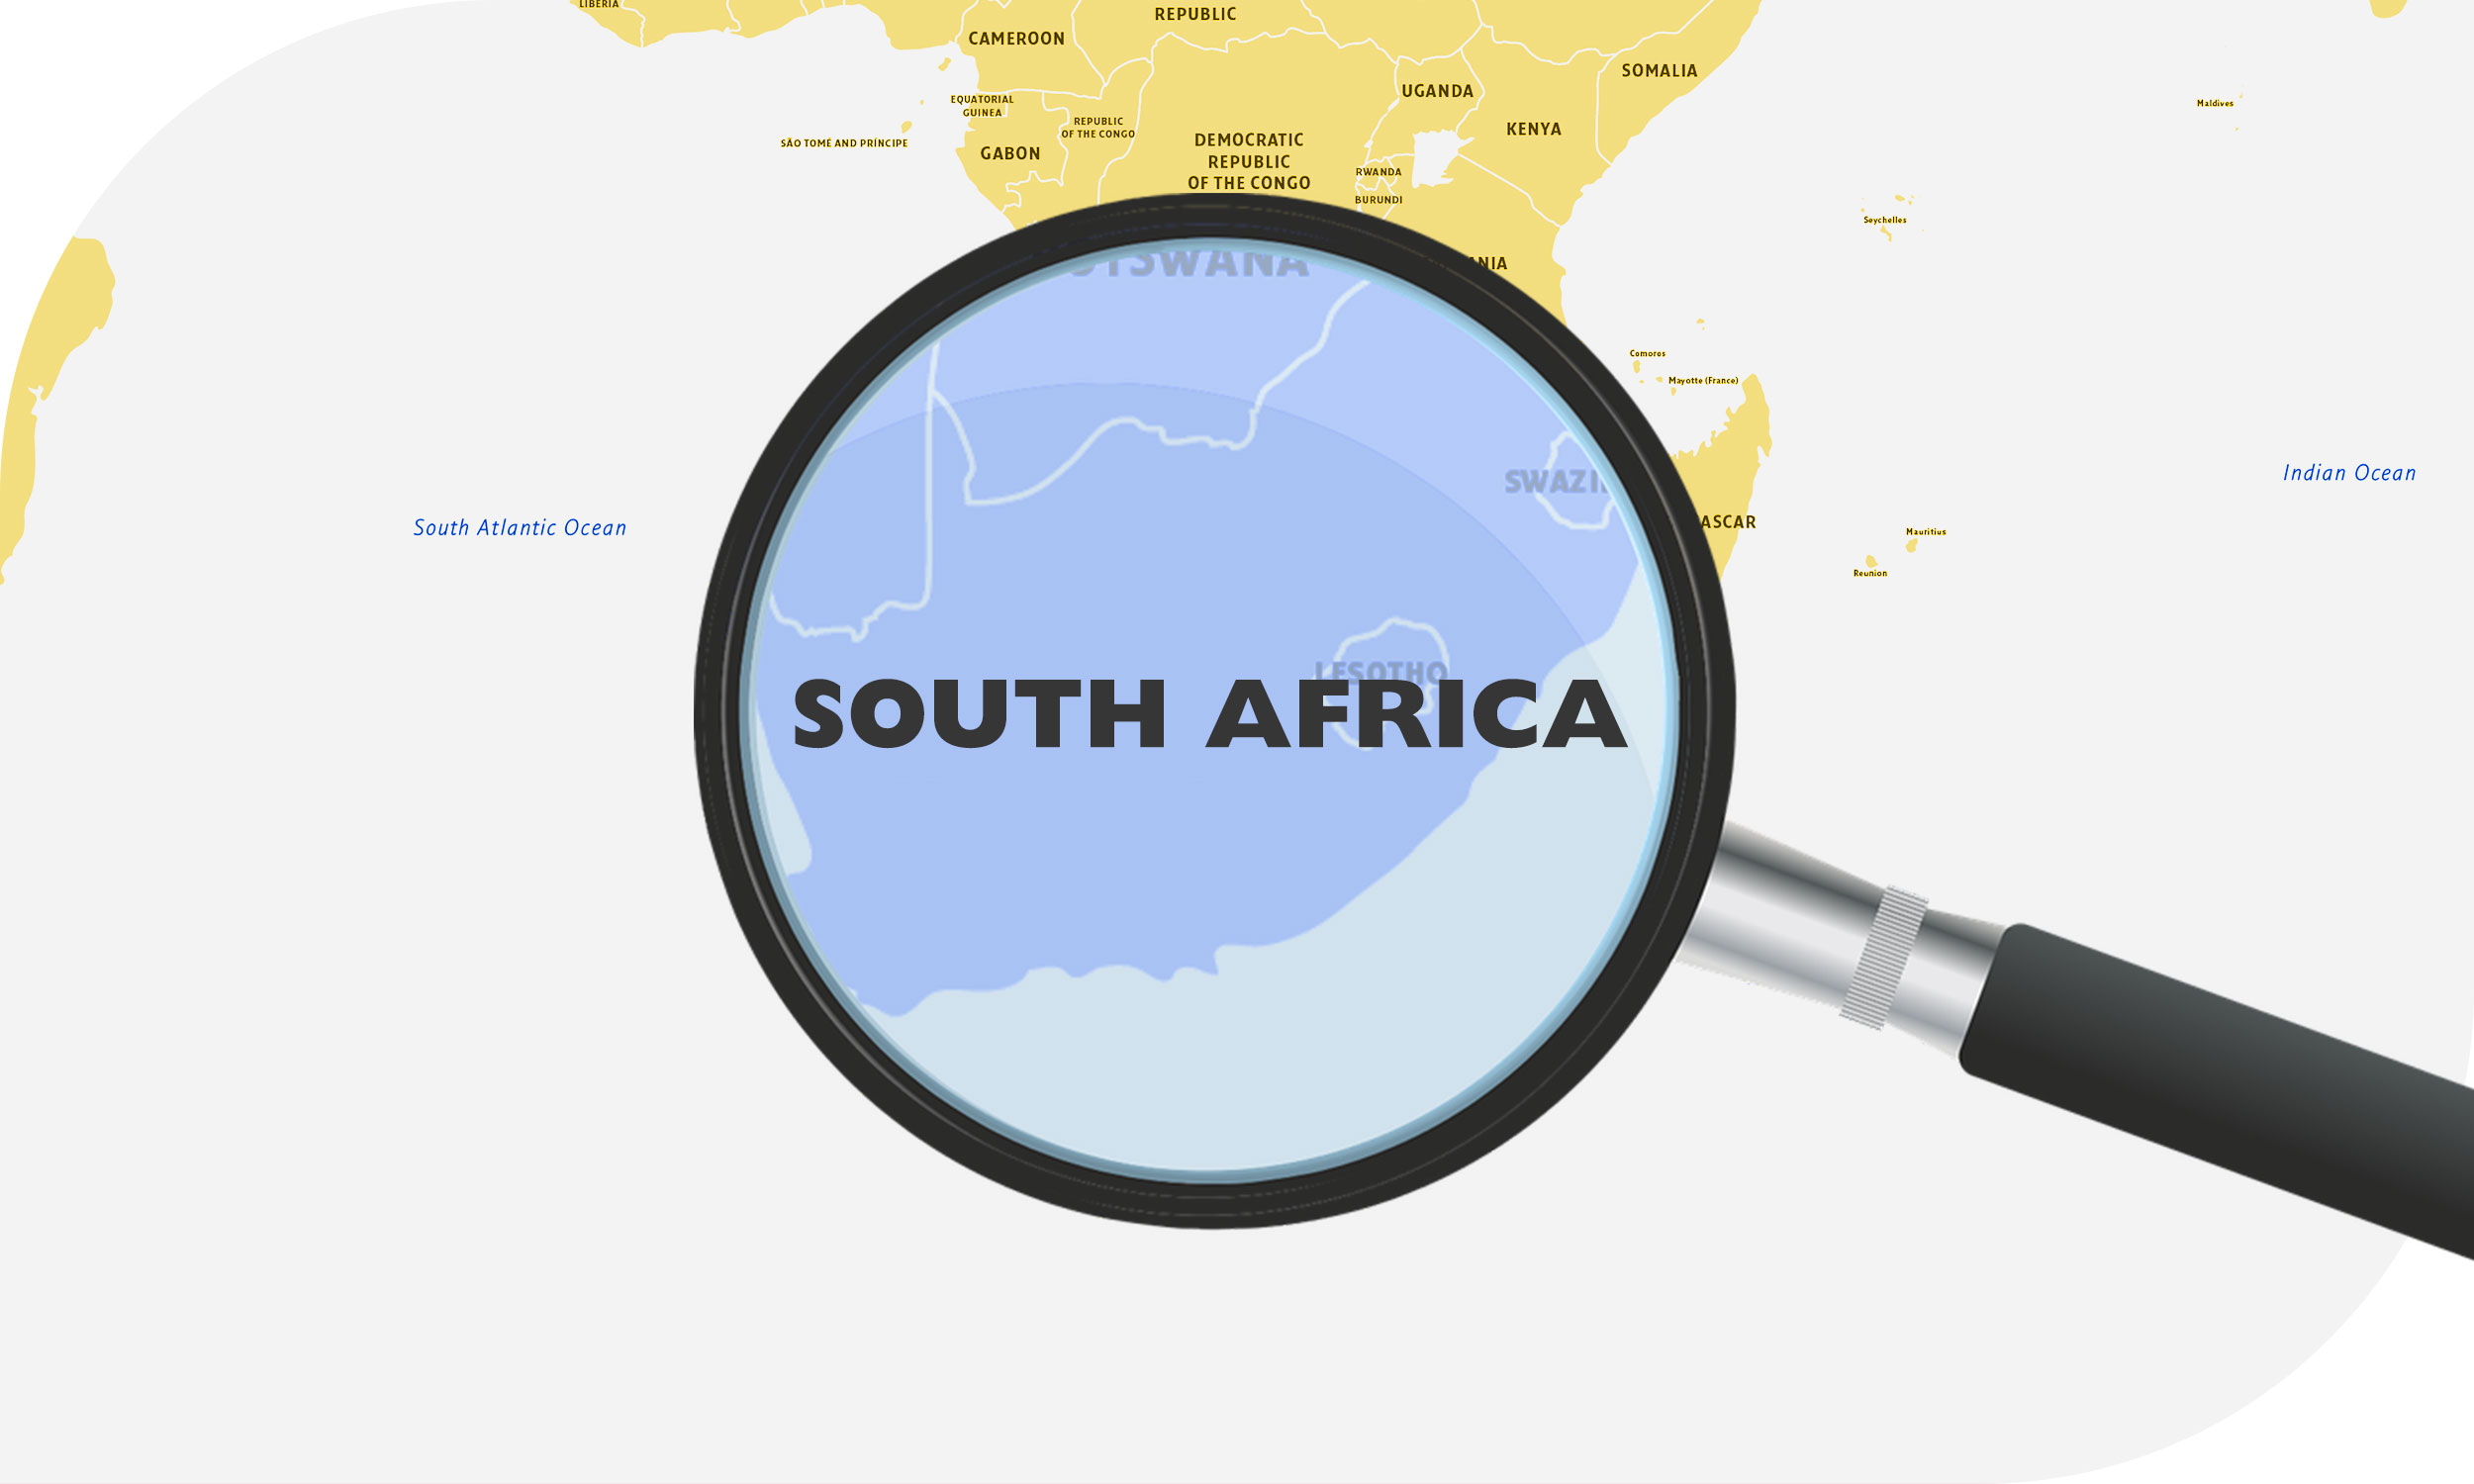 Map of Africa zoomed in on South Africa